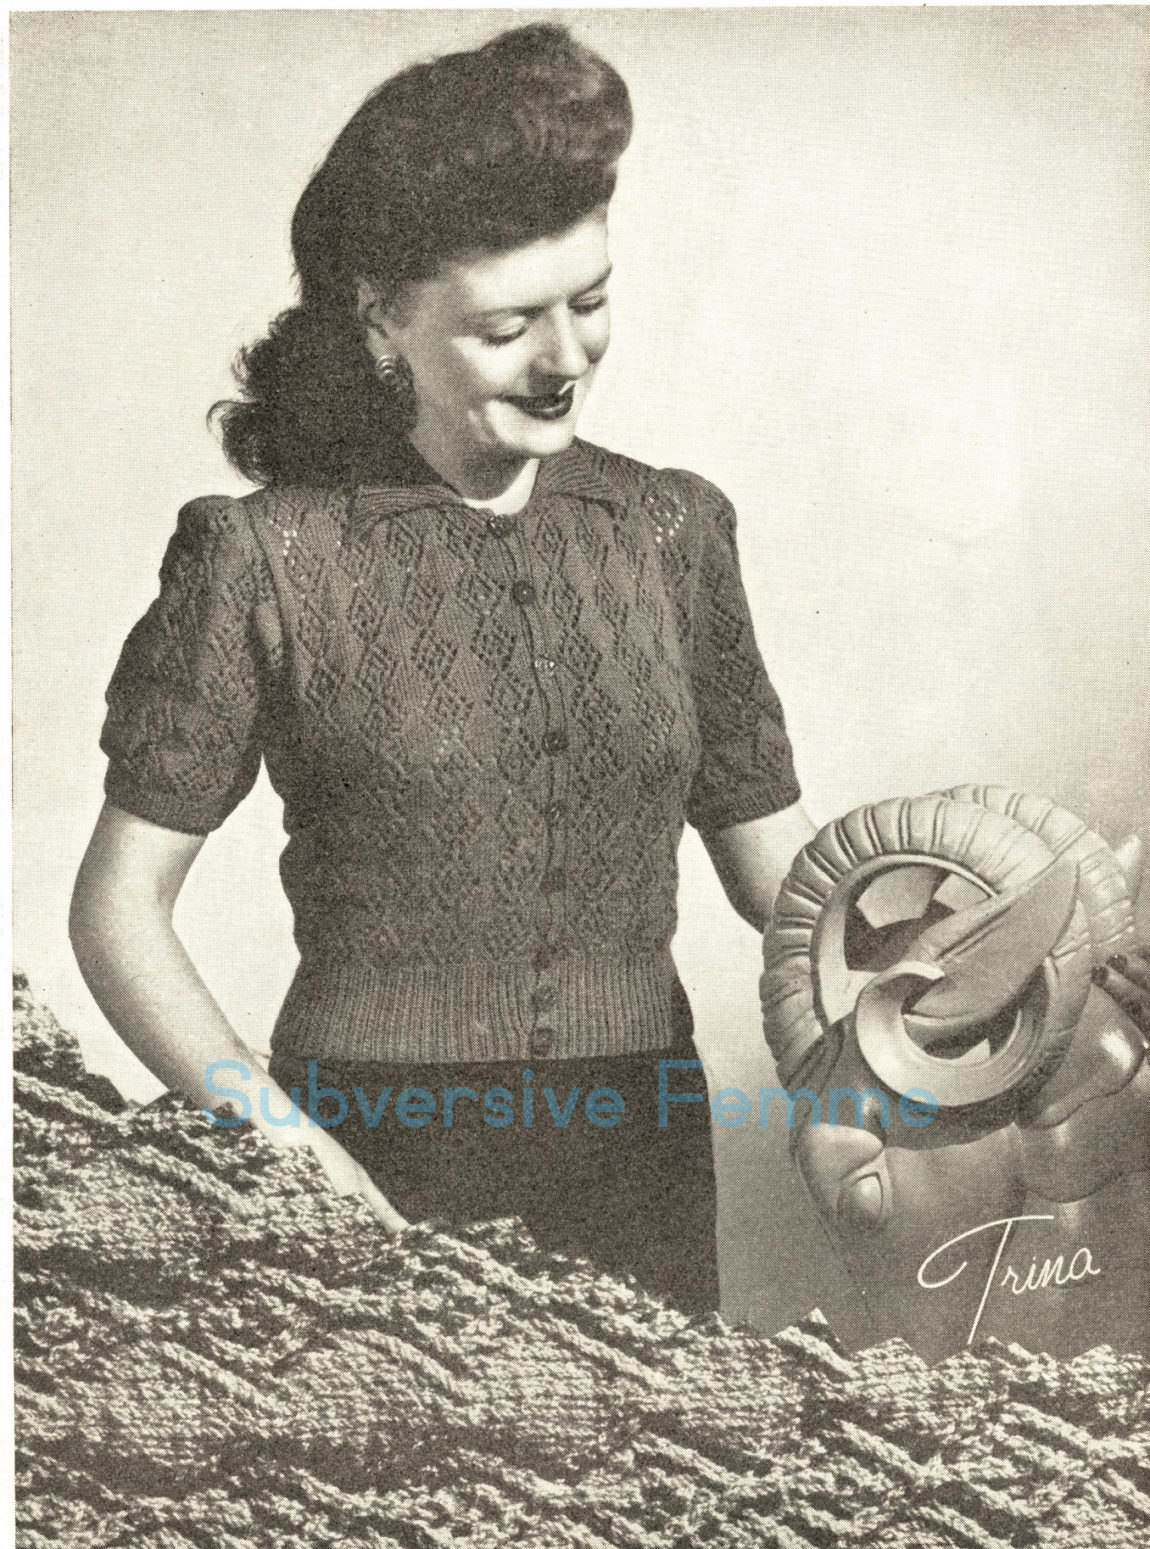 Knitted Jacket Patterns Free Free Knitting Pattern Trina Cardigan Jacket C 1940s Subversive